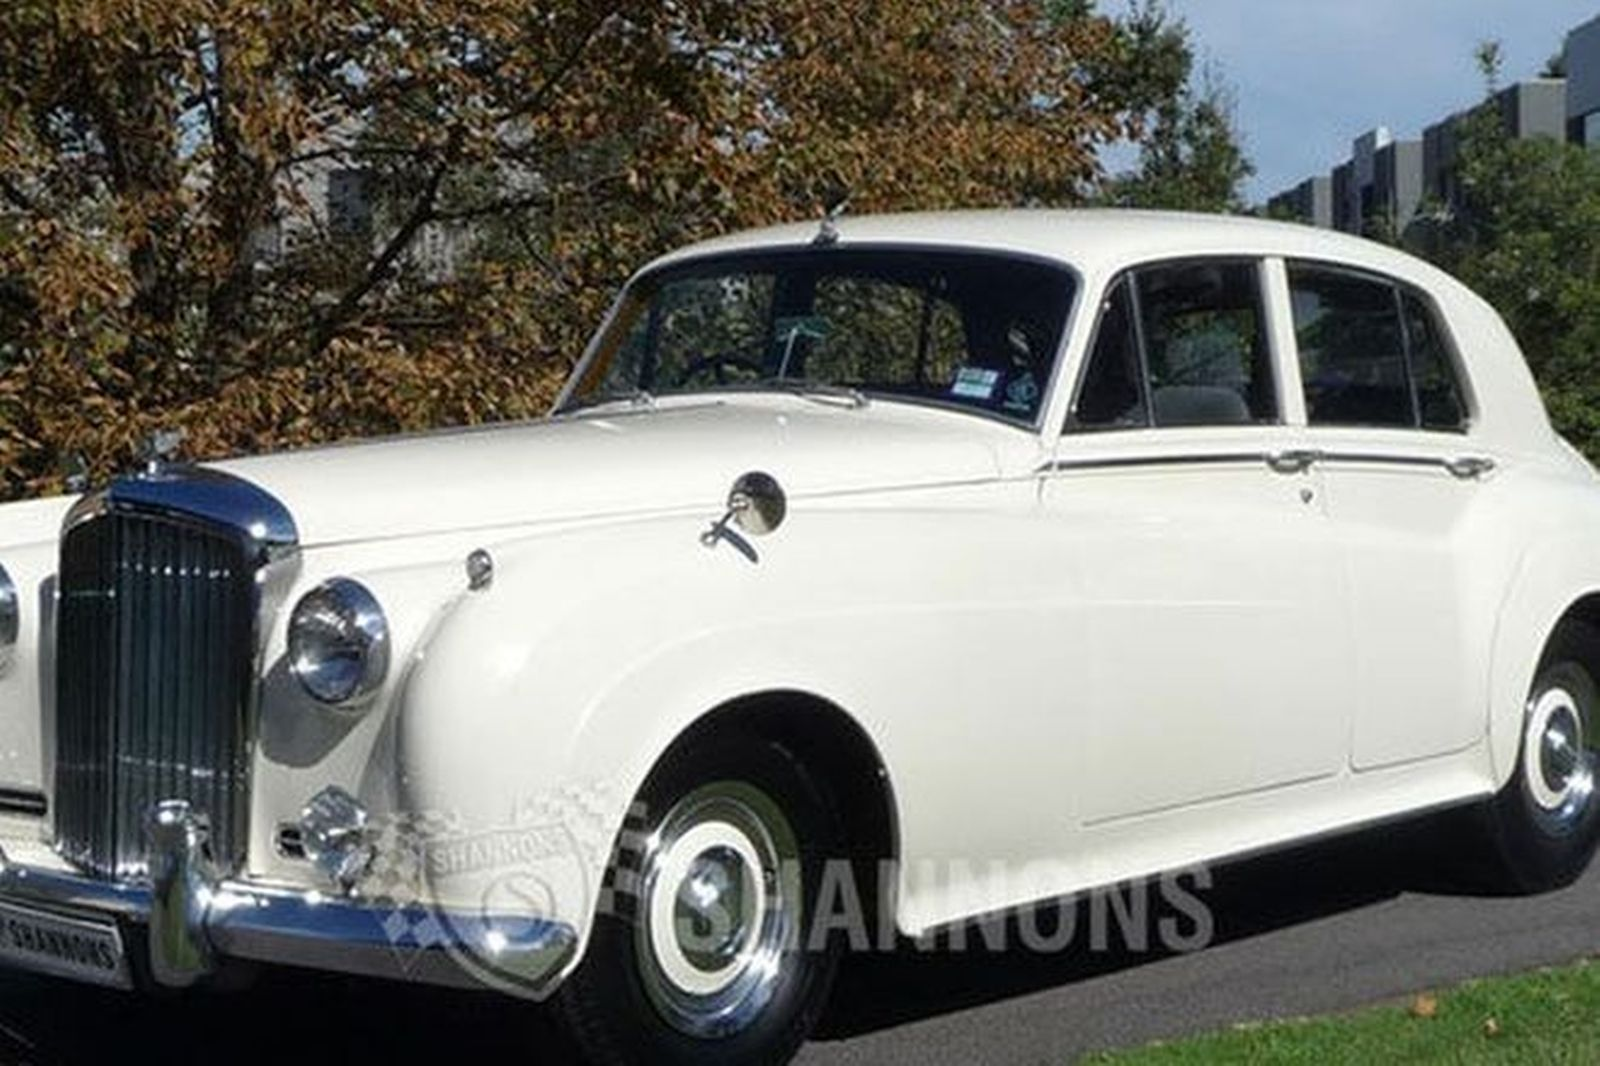 sold: bentley s1 saloon auctions - lot 32 - shannons